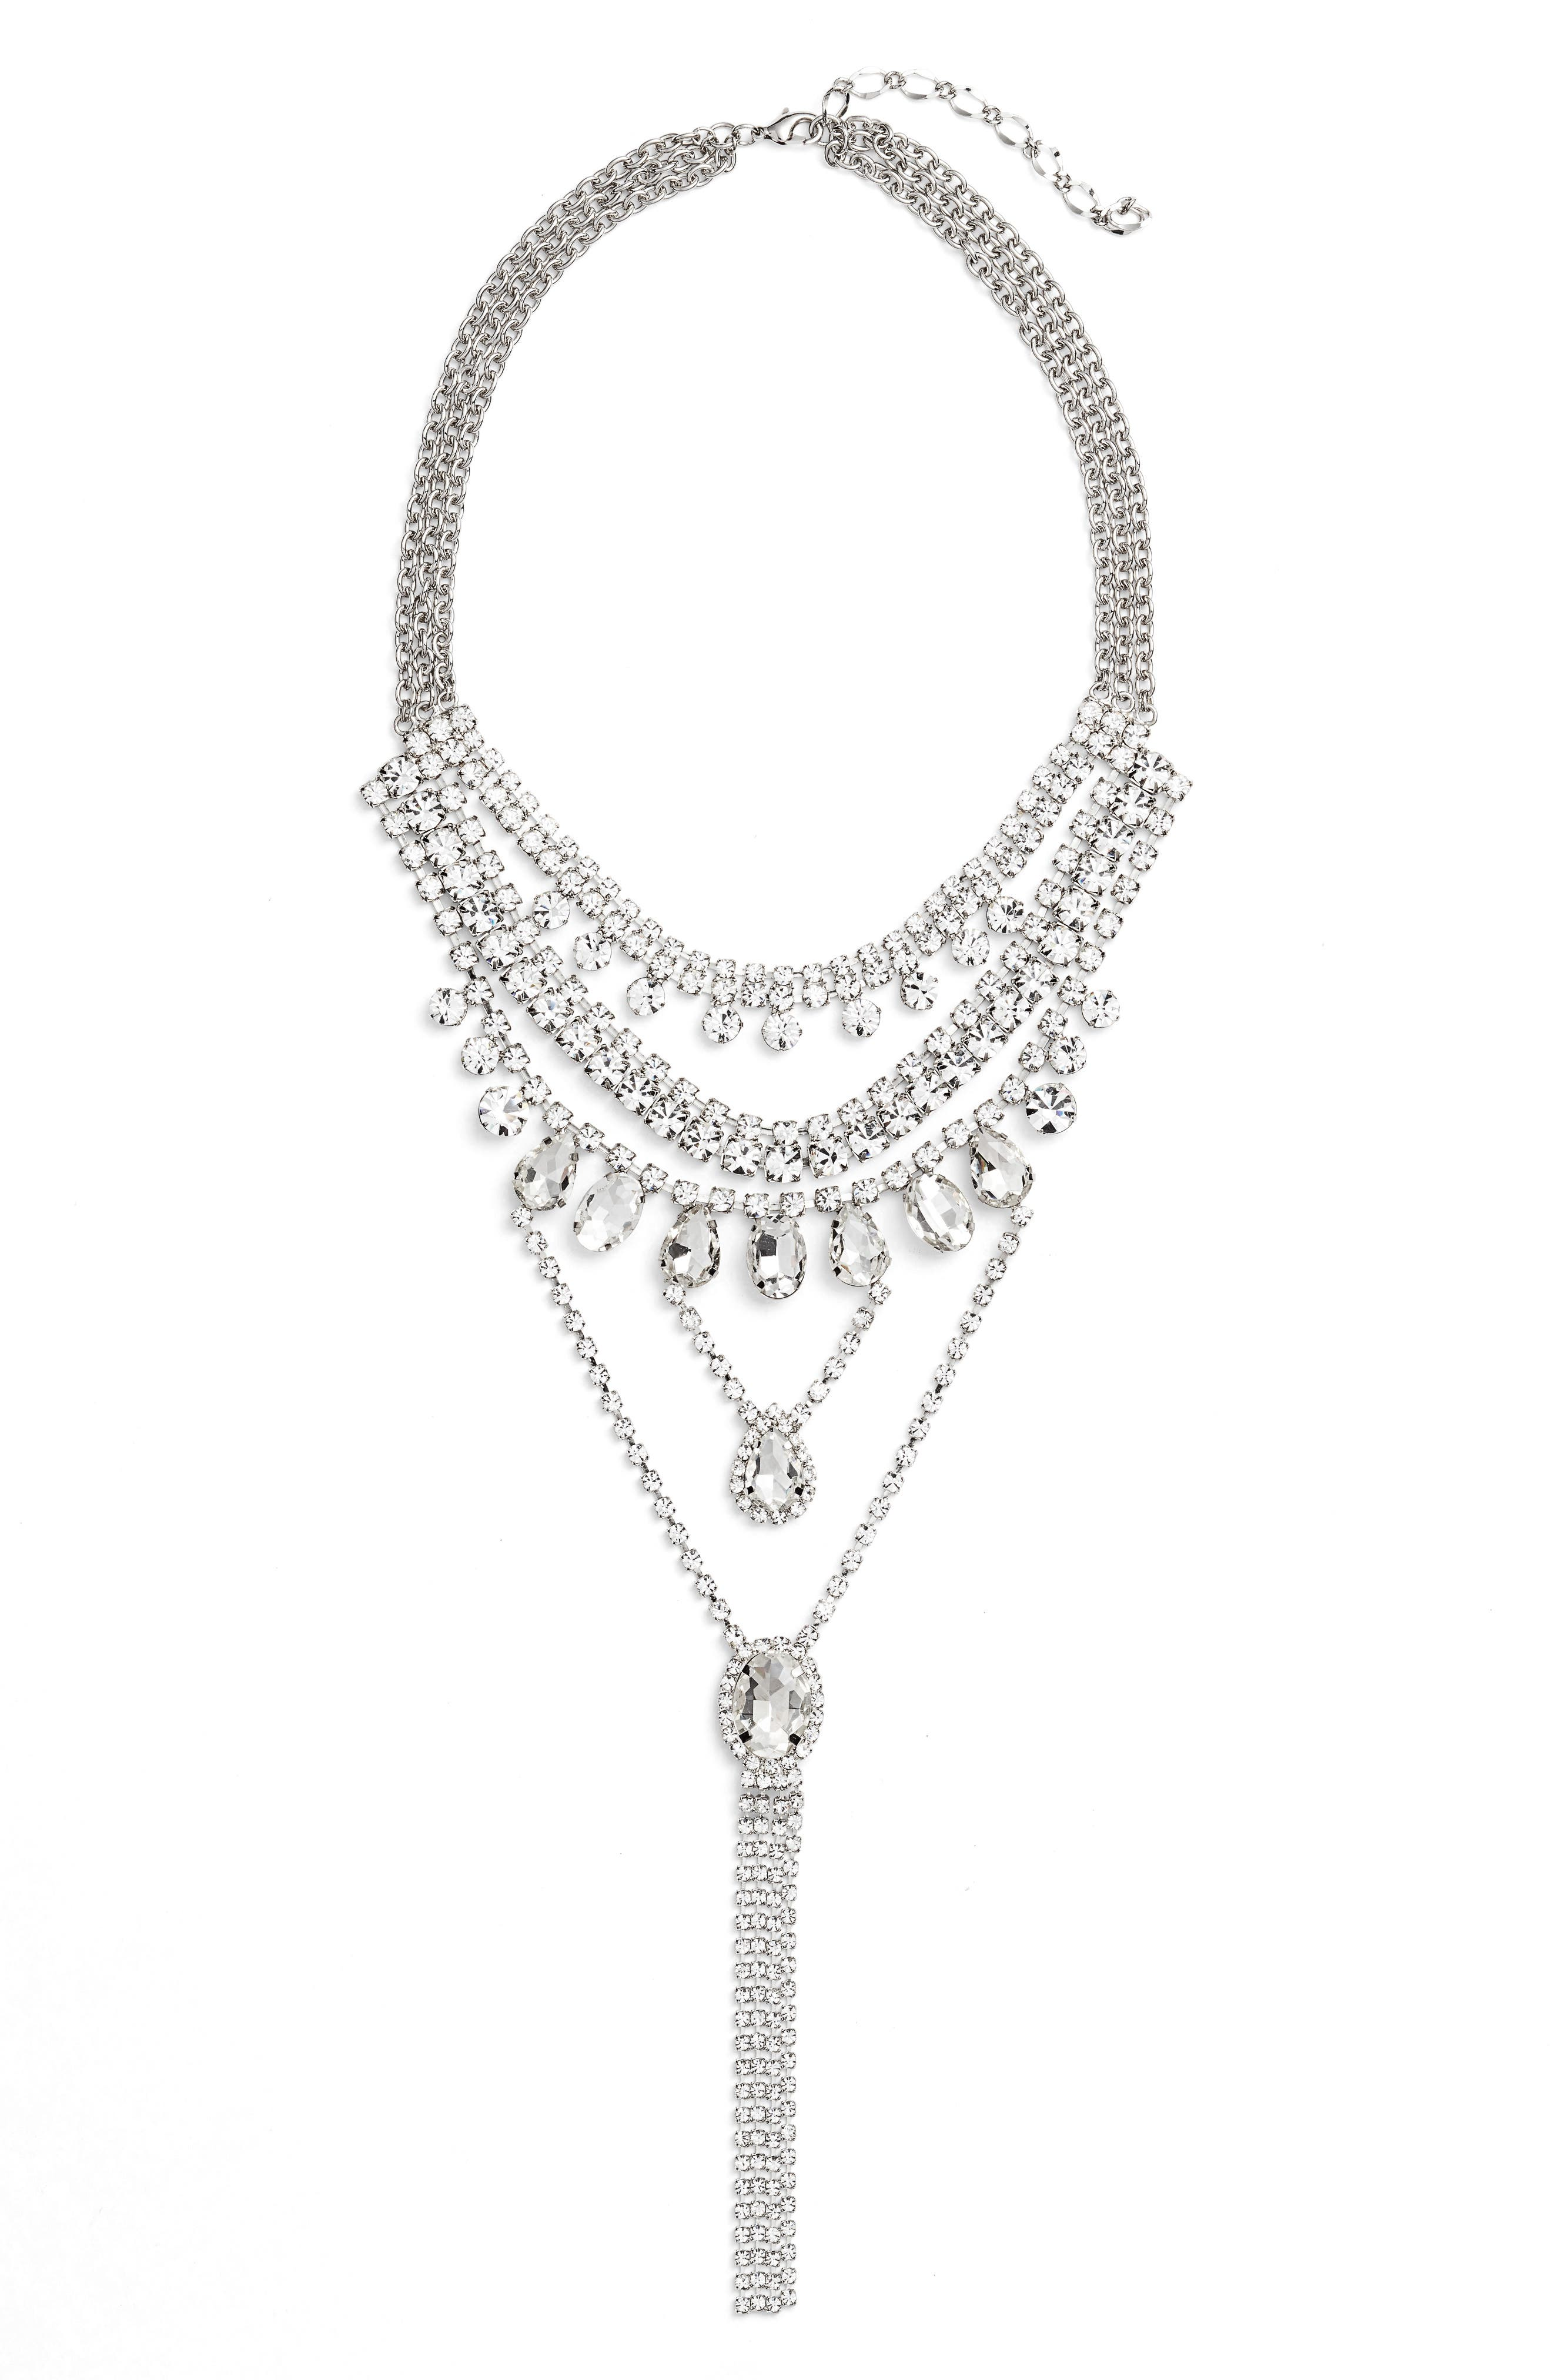 Multistrand Crystal Necklace,                             Main thumbnail 1, color,                             SILVER